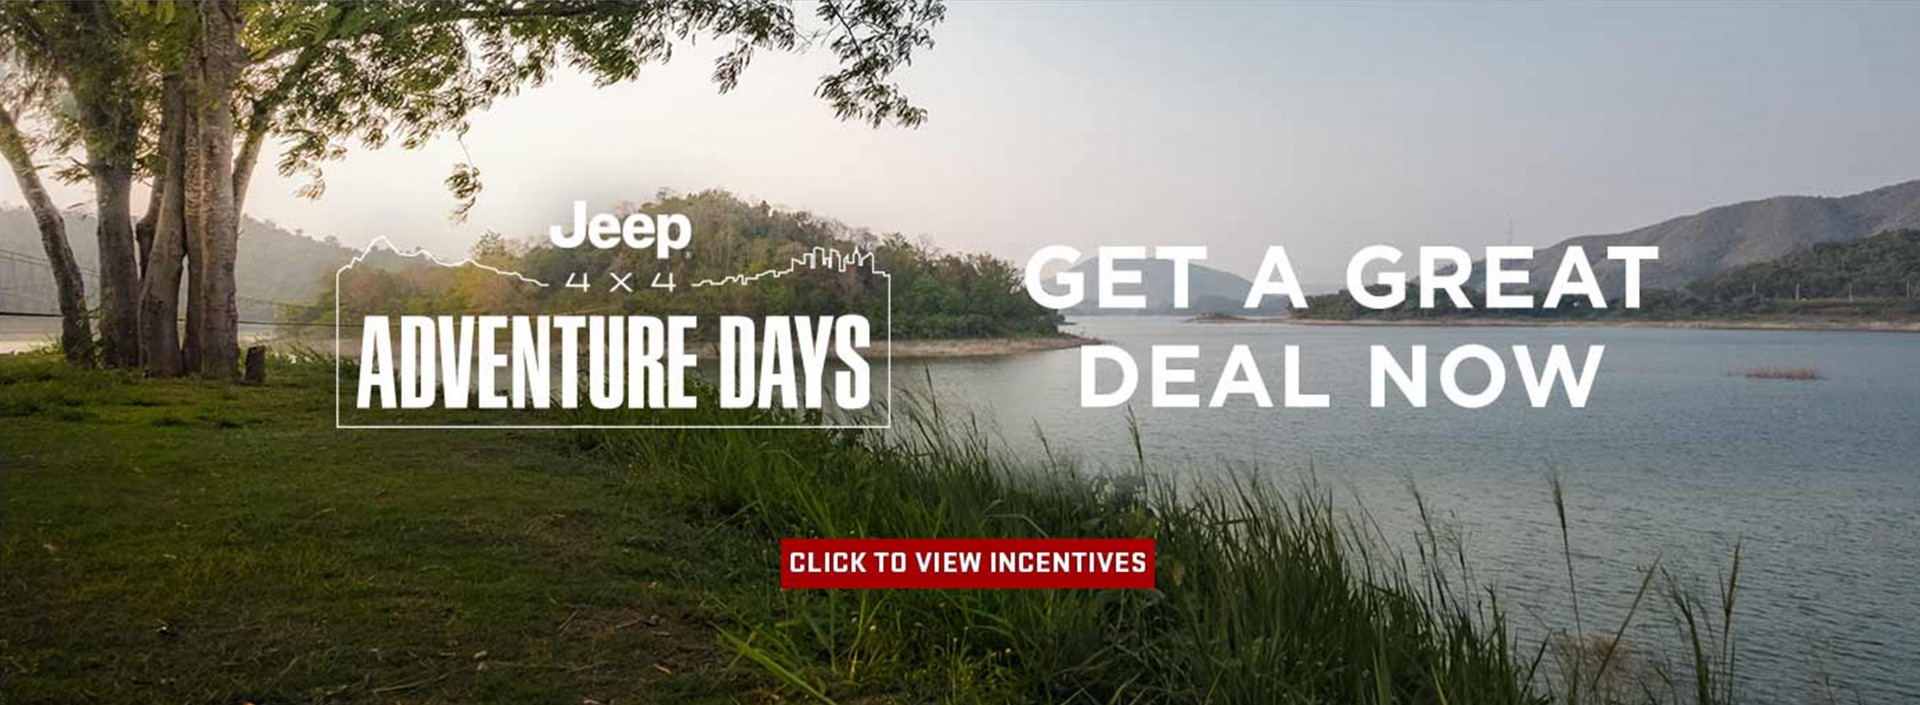 Car Dealership, Car Dealership near me, car dealership Norfolk ne, car dealership Nebraska, top auto in nebraska, top auto in norfolk, best auto norfolk, best auto, best auto nebraska, best car, top car, top, best, Norfolk, ne Car dealer, cars for 1500, norfolk cars for sale, 1500 cars, nebraska auto sales, jeep, jeep vehicles, 4wd, 4x4, jeeps, off road, suvs, crossover suv, jeep.com, jeep models, car dealer near me, car dealership Norfolk ne, car dealership Nebraska, Nebraska Norfolk ne car dealer, Norfolk ne car dealership, Norfolk car dealers, car dealers near me Used car dealer Norfolk ne, used car dealership Norfolk ne, auto dealership Norfolk ne, car dealerships near Norfolk, used car dealer, used cars for sale, used cars for sale near me, car dealership, car dealership near me, car dealershps near me, car dealerships, car dealership used near me, car dealership near me used, car dealership for bad credit, Chrysler dodge jeep ram dealer, Chrysler dodge jeep ram dealership, Chrysler dodge jeep ram dealership near me, nebraska Chrysler Pacifica, Chrysler Pacifica for sale, Chrysler pacifica near me, Chrysler pacifica for sale Nebraska, Chrysler pacifica for sale Norfolk Nebraska, Chrysler pacifica lease deals, Chrysler pacifica sale, Norfolk, Nebraska, Chrysler Pacifica Dealer near me, 2019 Chrysler Pacifica, 2018 Chrysler Pacifica, 2017 Chrysler Pacifica, 2016 Chrysler Pacifica, 2015 Chrysler Pacifica Chrysler, Chrysler for sale, Chrysler near me, Chrysler for sale Nebraska, Chrysler for sale Norfolk Nebraska, Chrysler lease deals, Chrysler sale, Norfolk, Nebraska, Chrysler Dealer near me Dodge Challenger, Dodge Challenger for sale, Dodge Challenger near me, Dodge Challenger for sale Nebraska Dodge Challenger for sale Norfolk Nebraska, Dodge Challenger lease deals, Dodge Challenger  sale, Norfolk, Nebraska, Dodge Challenger Dealer near me 2019 Dodge Challenger, 2018 Dodge Challenger, 2017 Dodge Challenger, 2016 Dodge Challenger, 2015 Dodge Challenger Dodge Char